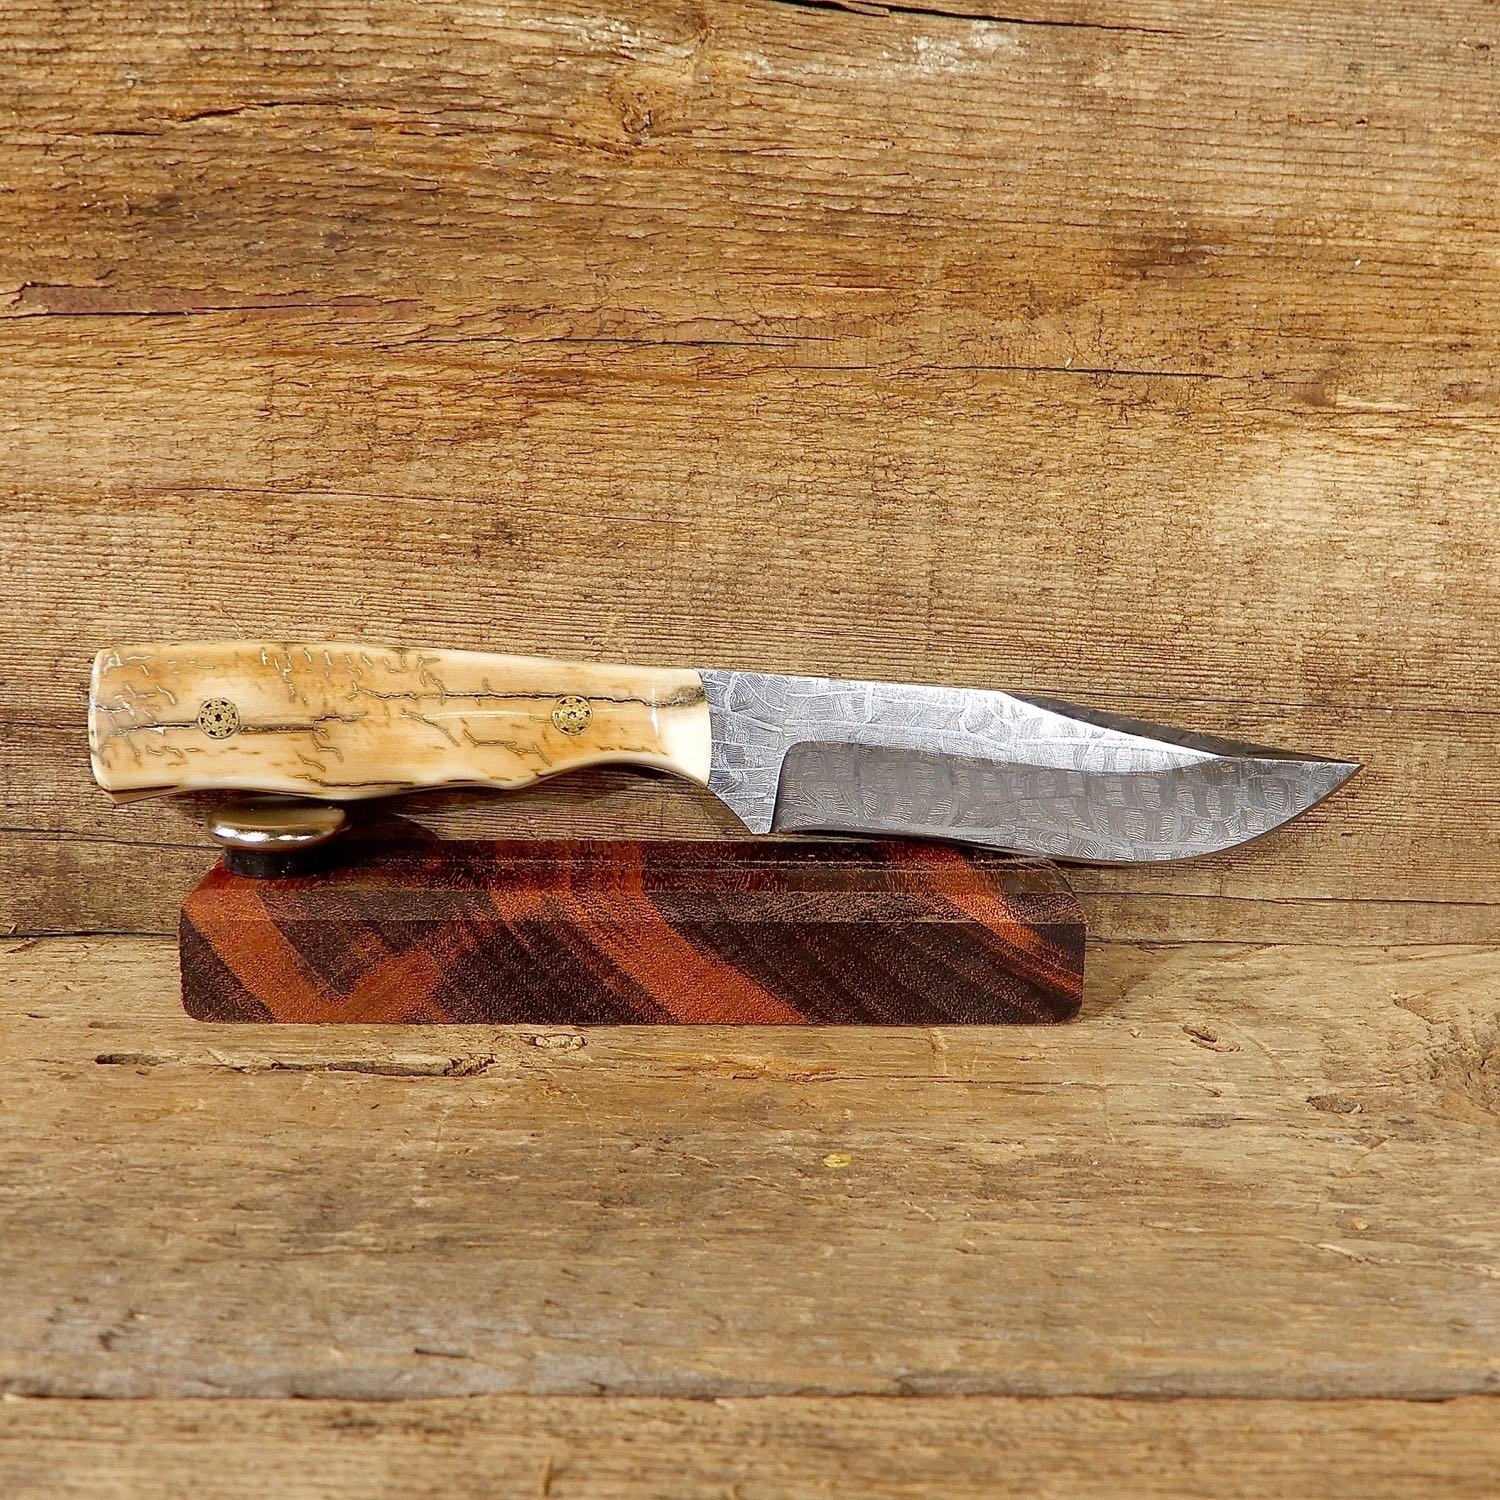 Custom Damascus Hunting Knife with Mammoth Tusk Handle For Sale